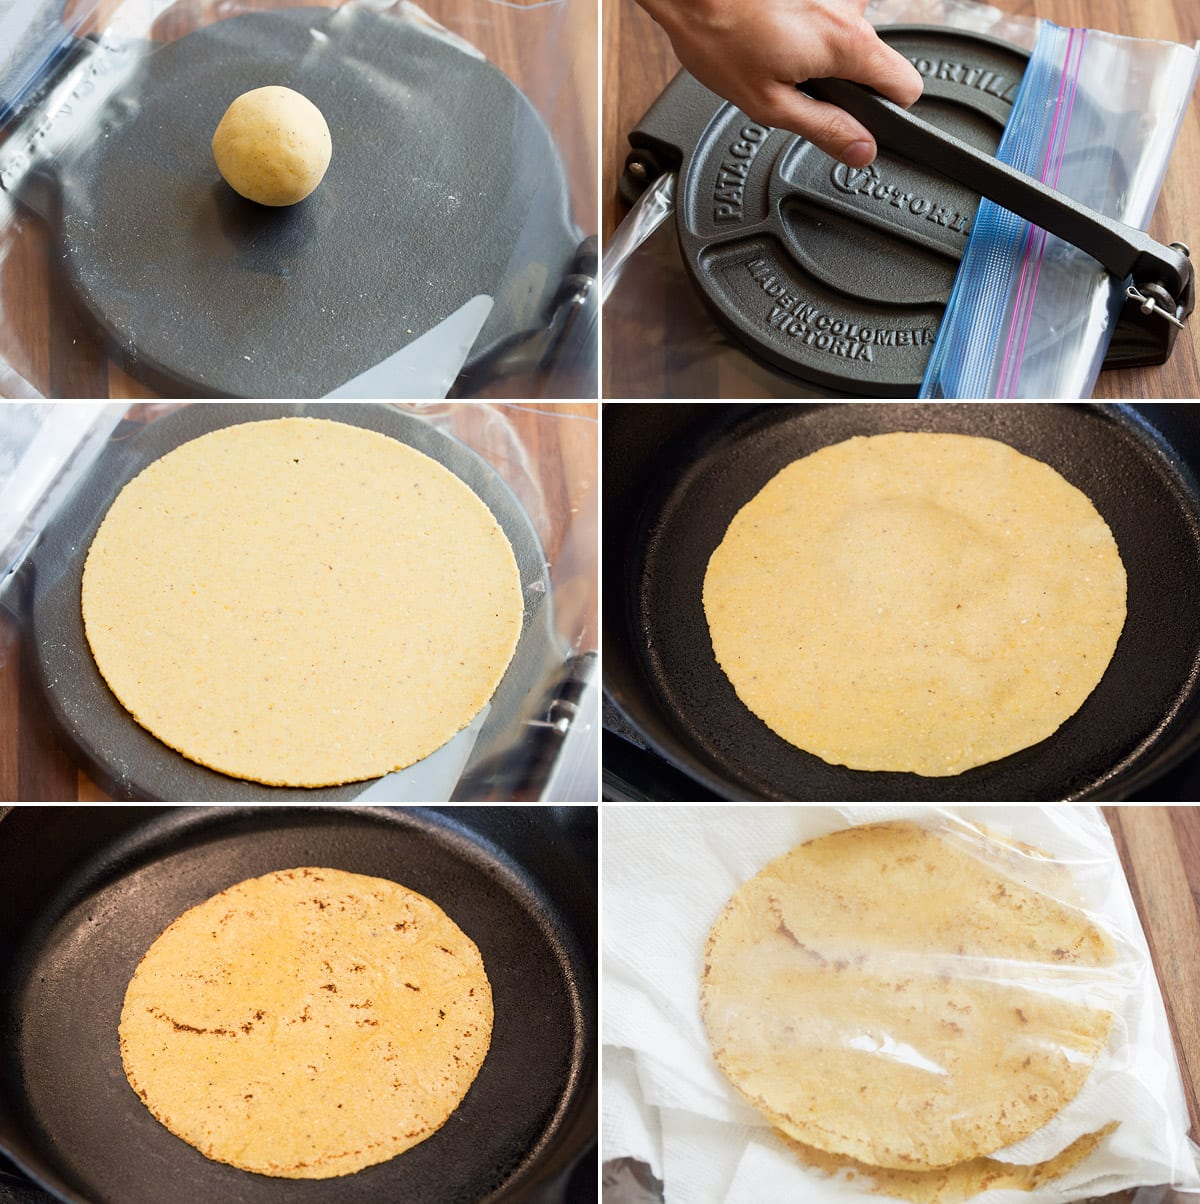 Collage of six images showing how to press corn tortilla dough in a tortilla press and cook in a skillet, then steam in a bag to soften.